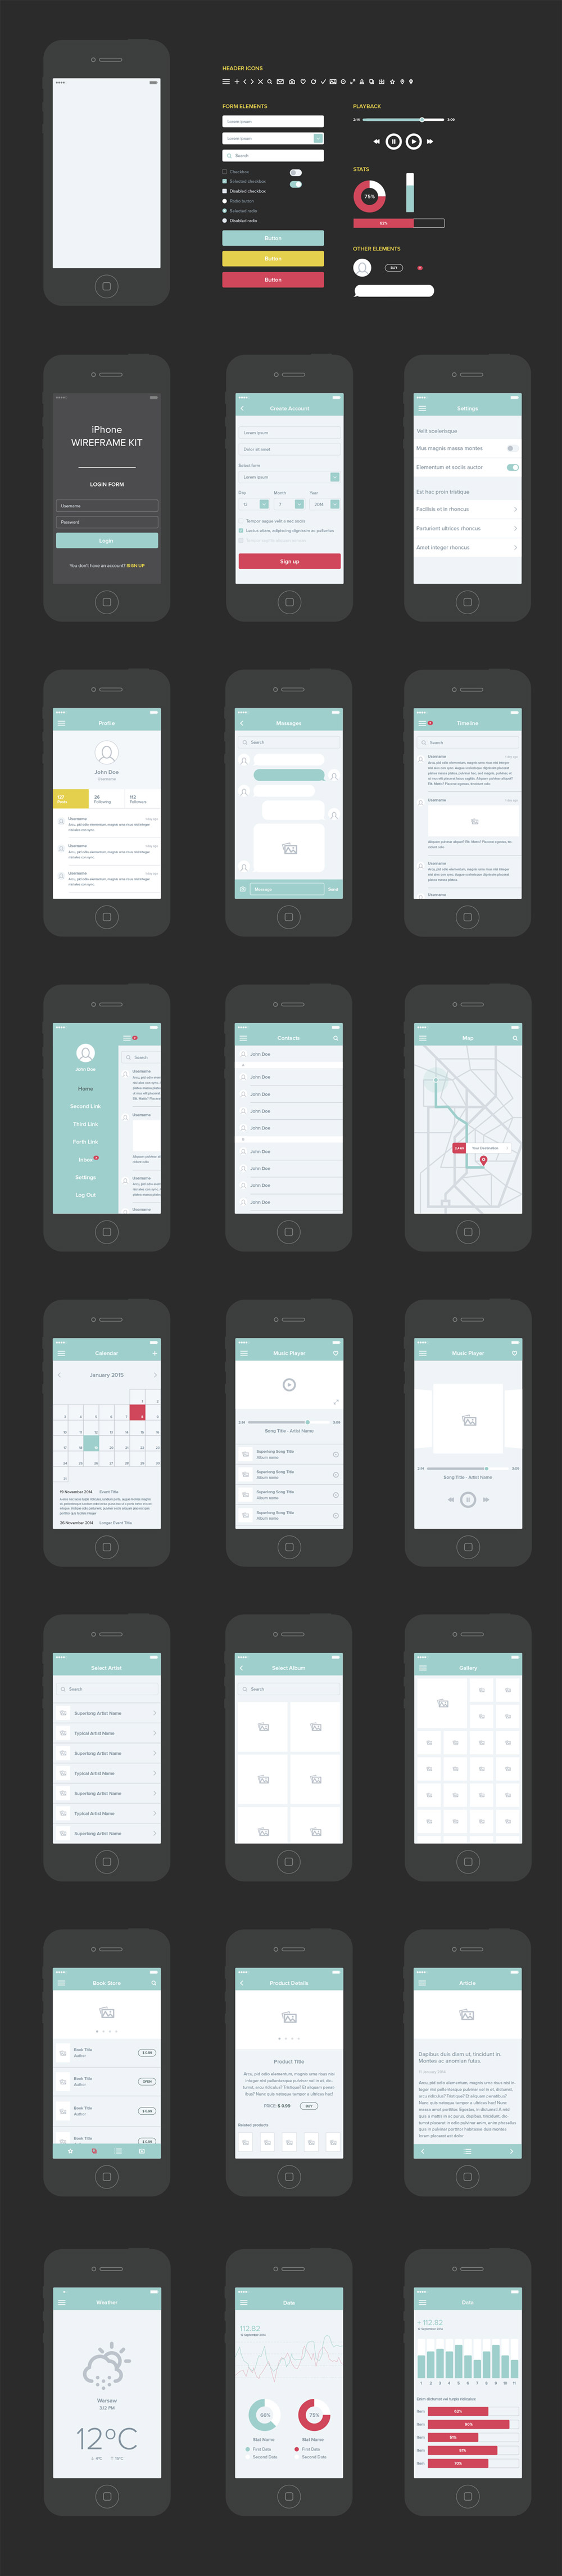 Free Vector UX   UI Wireframe Kit   GraphicsFuel free mobile app ui kit